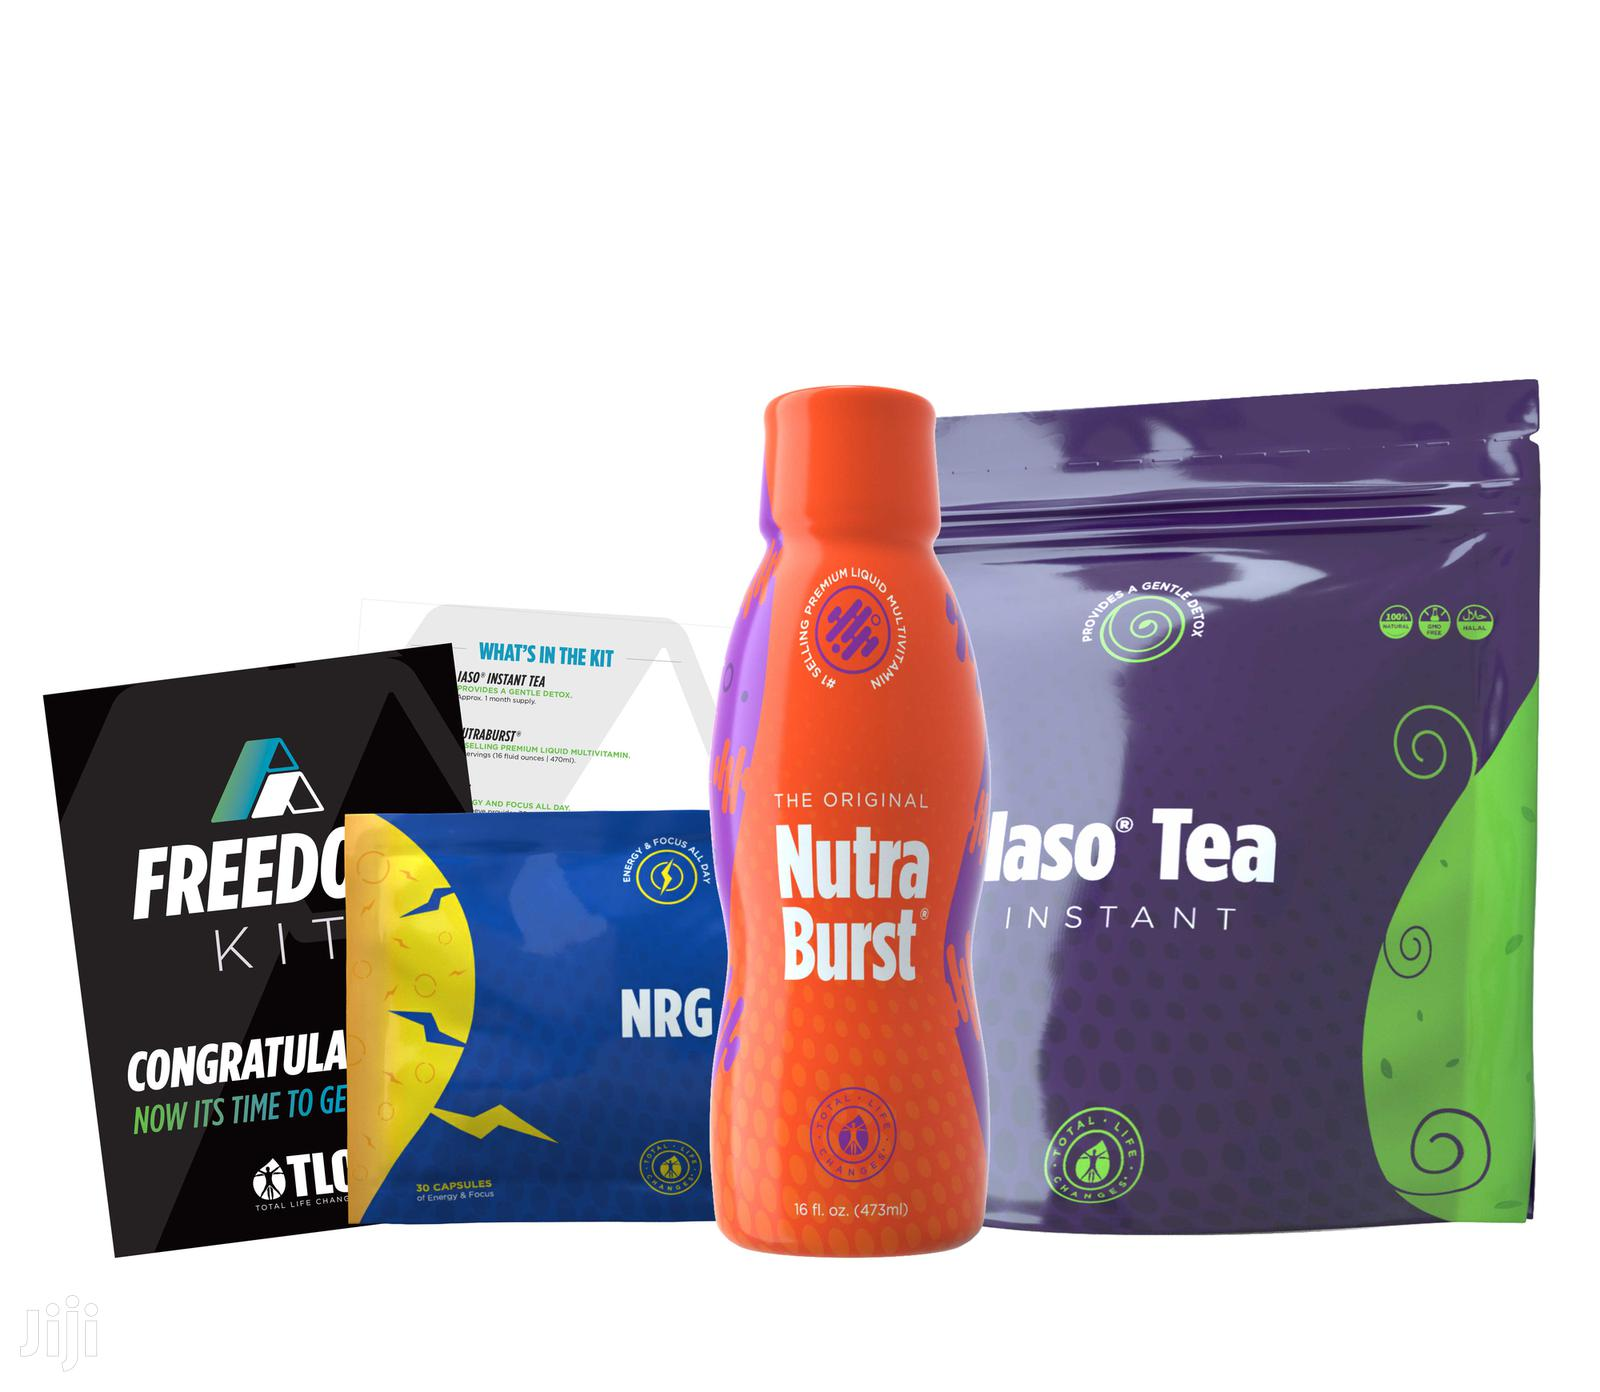 Archive: Iaso Detox & Weight Loss Products